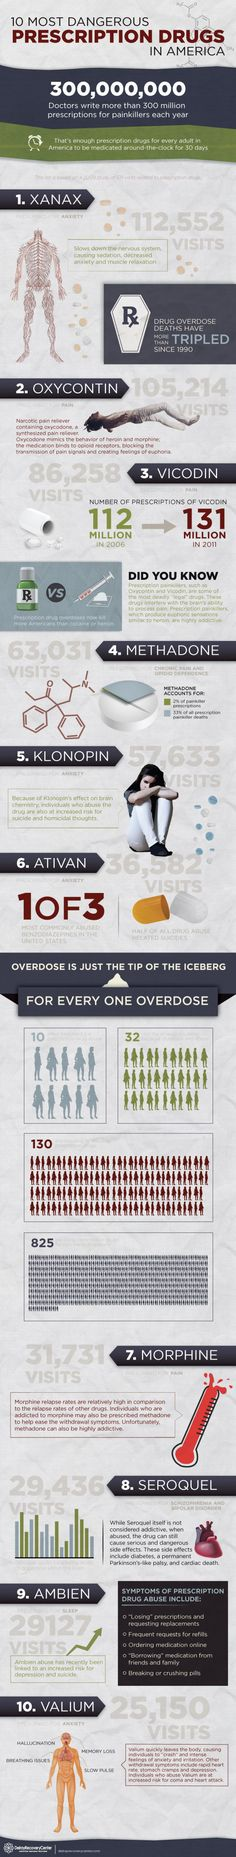 10 Most Dangerous Prescription Drugs Infographic - delrayrecoverycenter.com